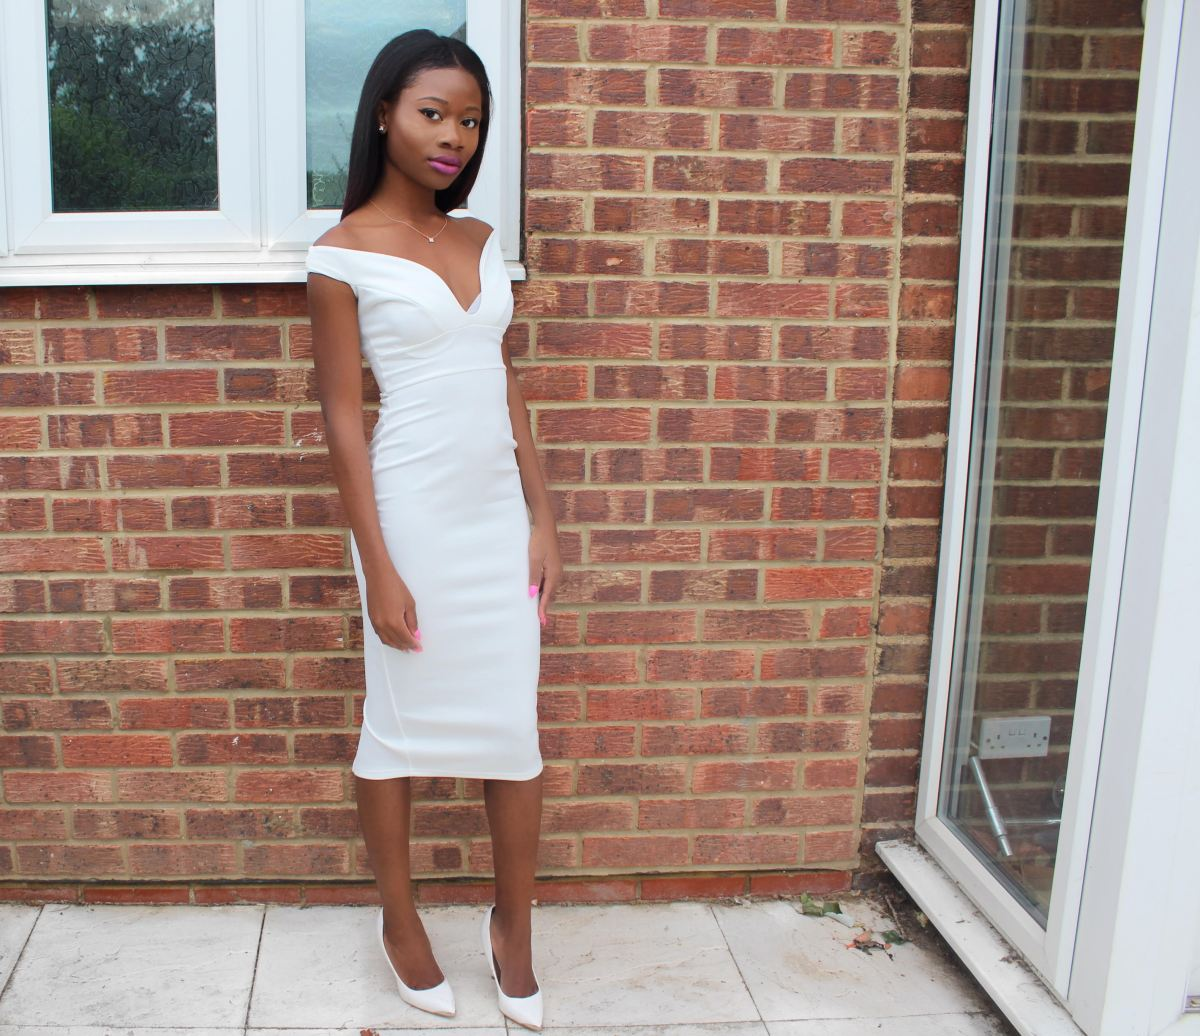 Boohoo, White dress, Off the shoulder sweetheart dress, Elegnant, Sexy, Off the shoulder white dress, Off the shoulder dress with slit at the back, Off the shoulder dress from Boohoo